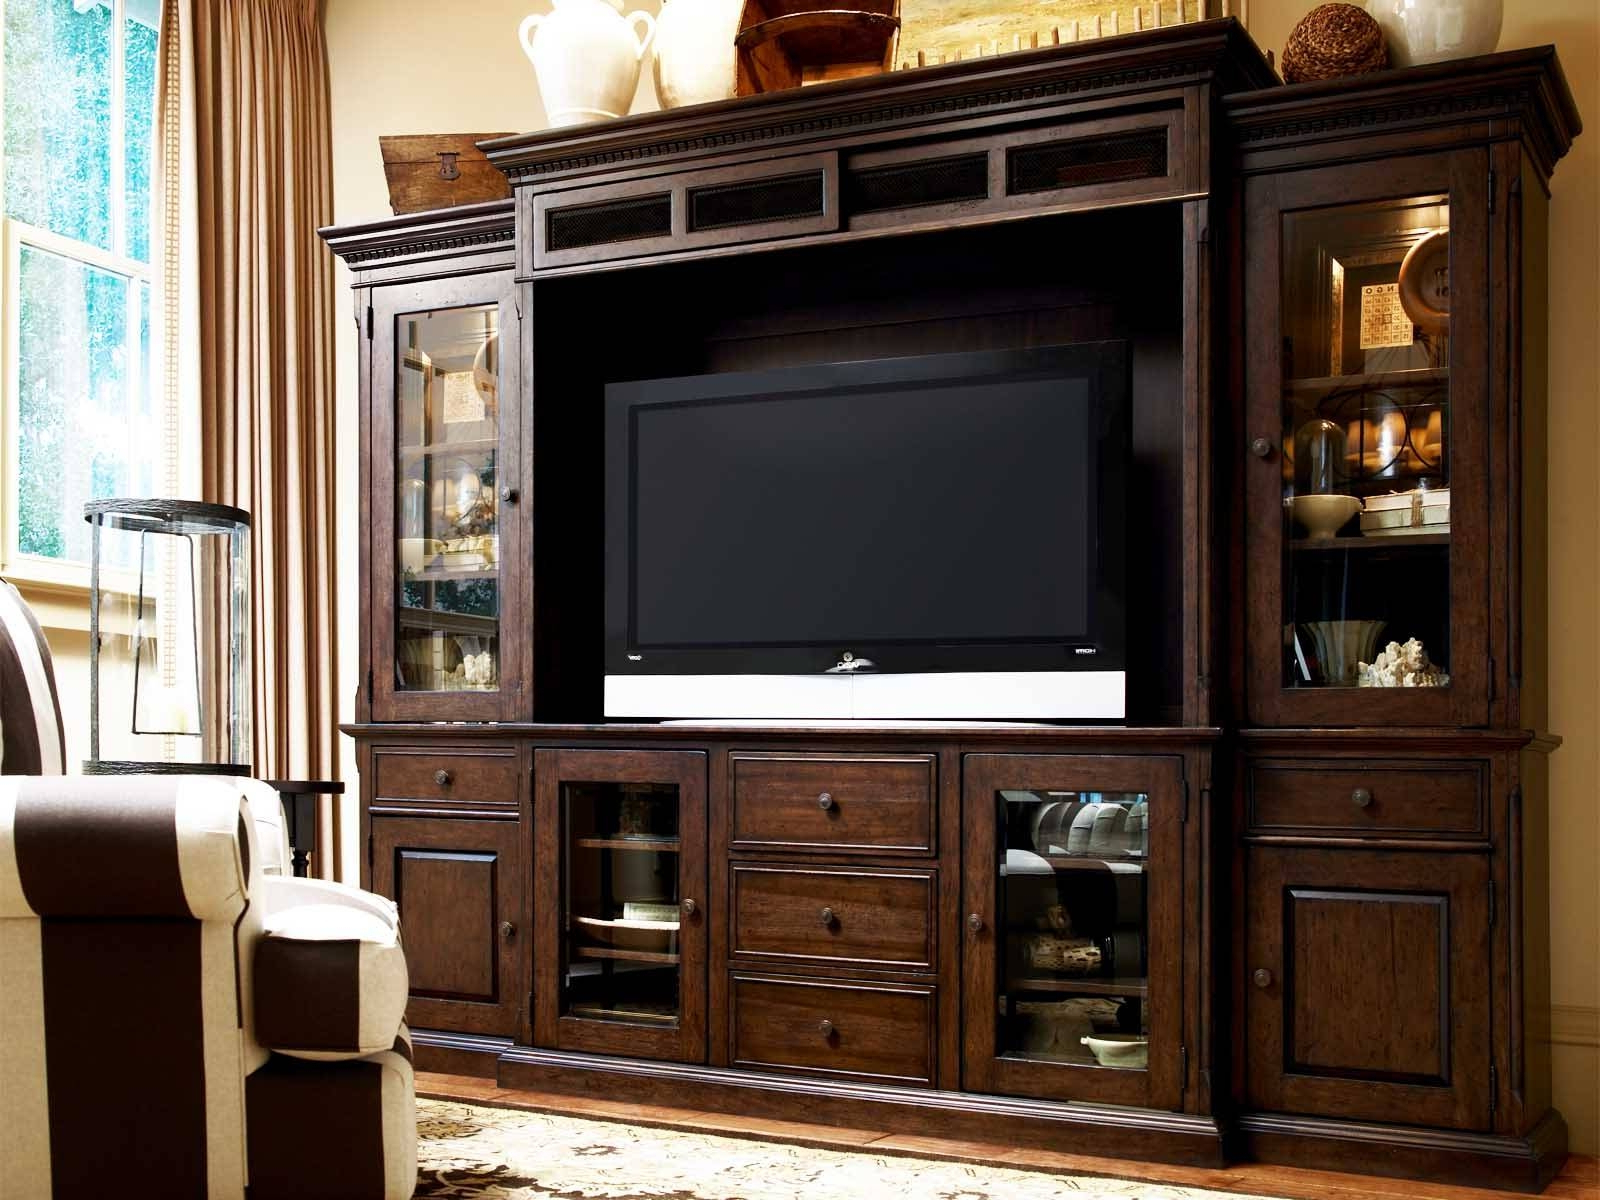 Preferred Wooden Tv Cabinet Tv Cabinet With Glass Doors Filing Cabinets Argos Pertaining To Wooden Tv Cabinets With Glass Doors (View 6 of 20)